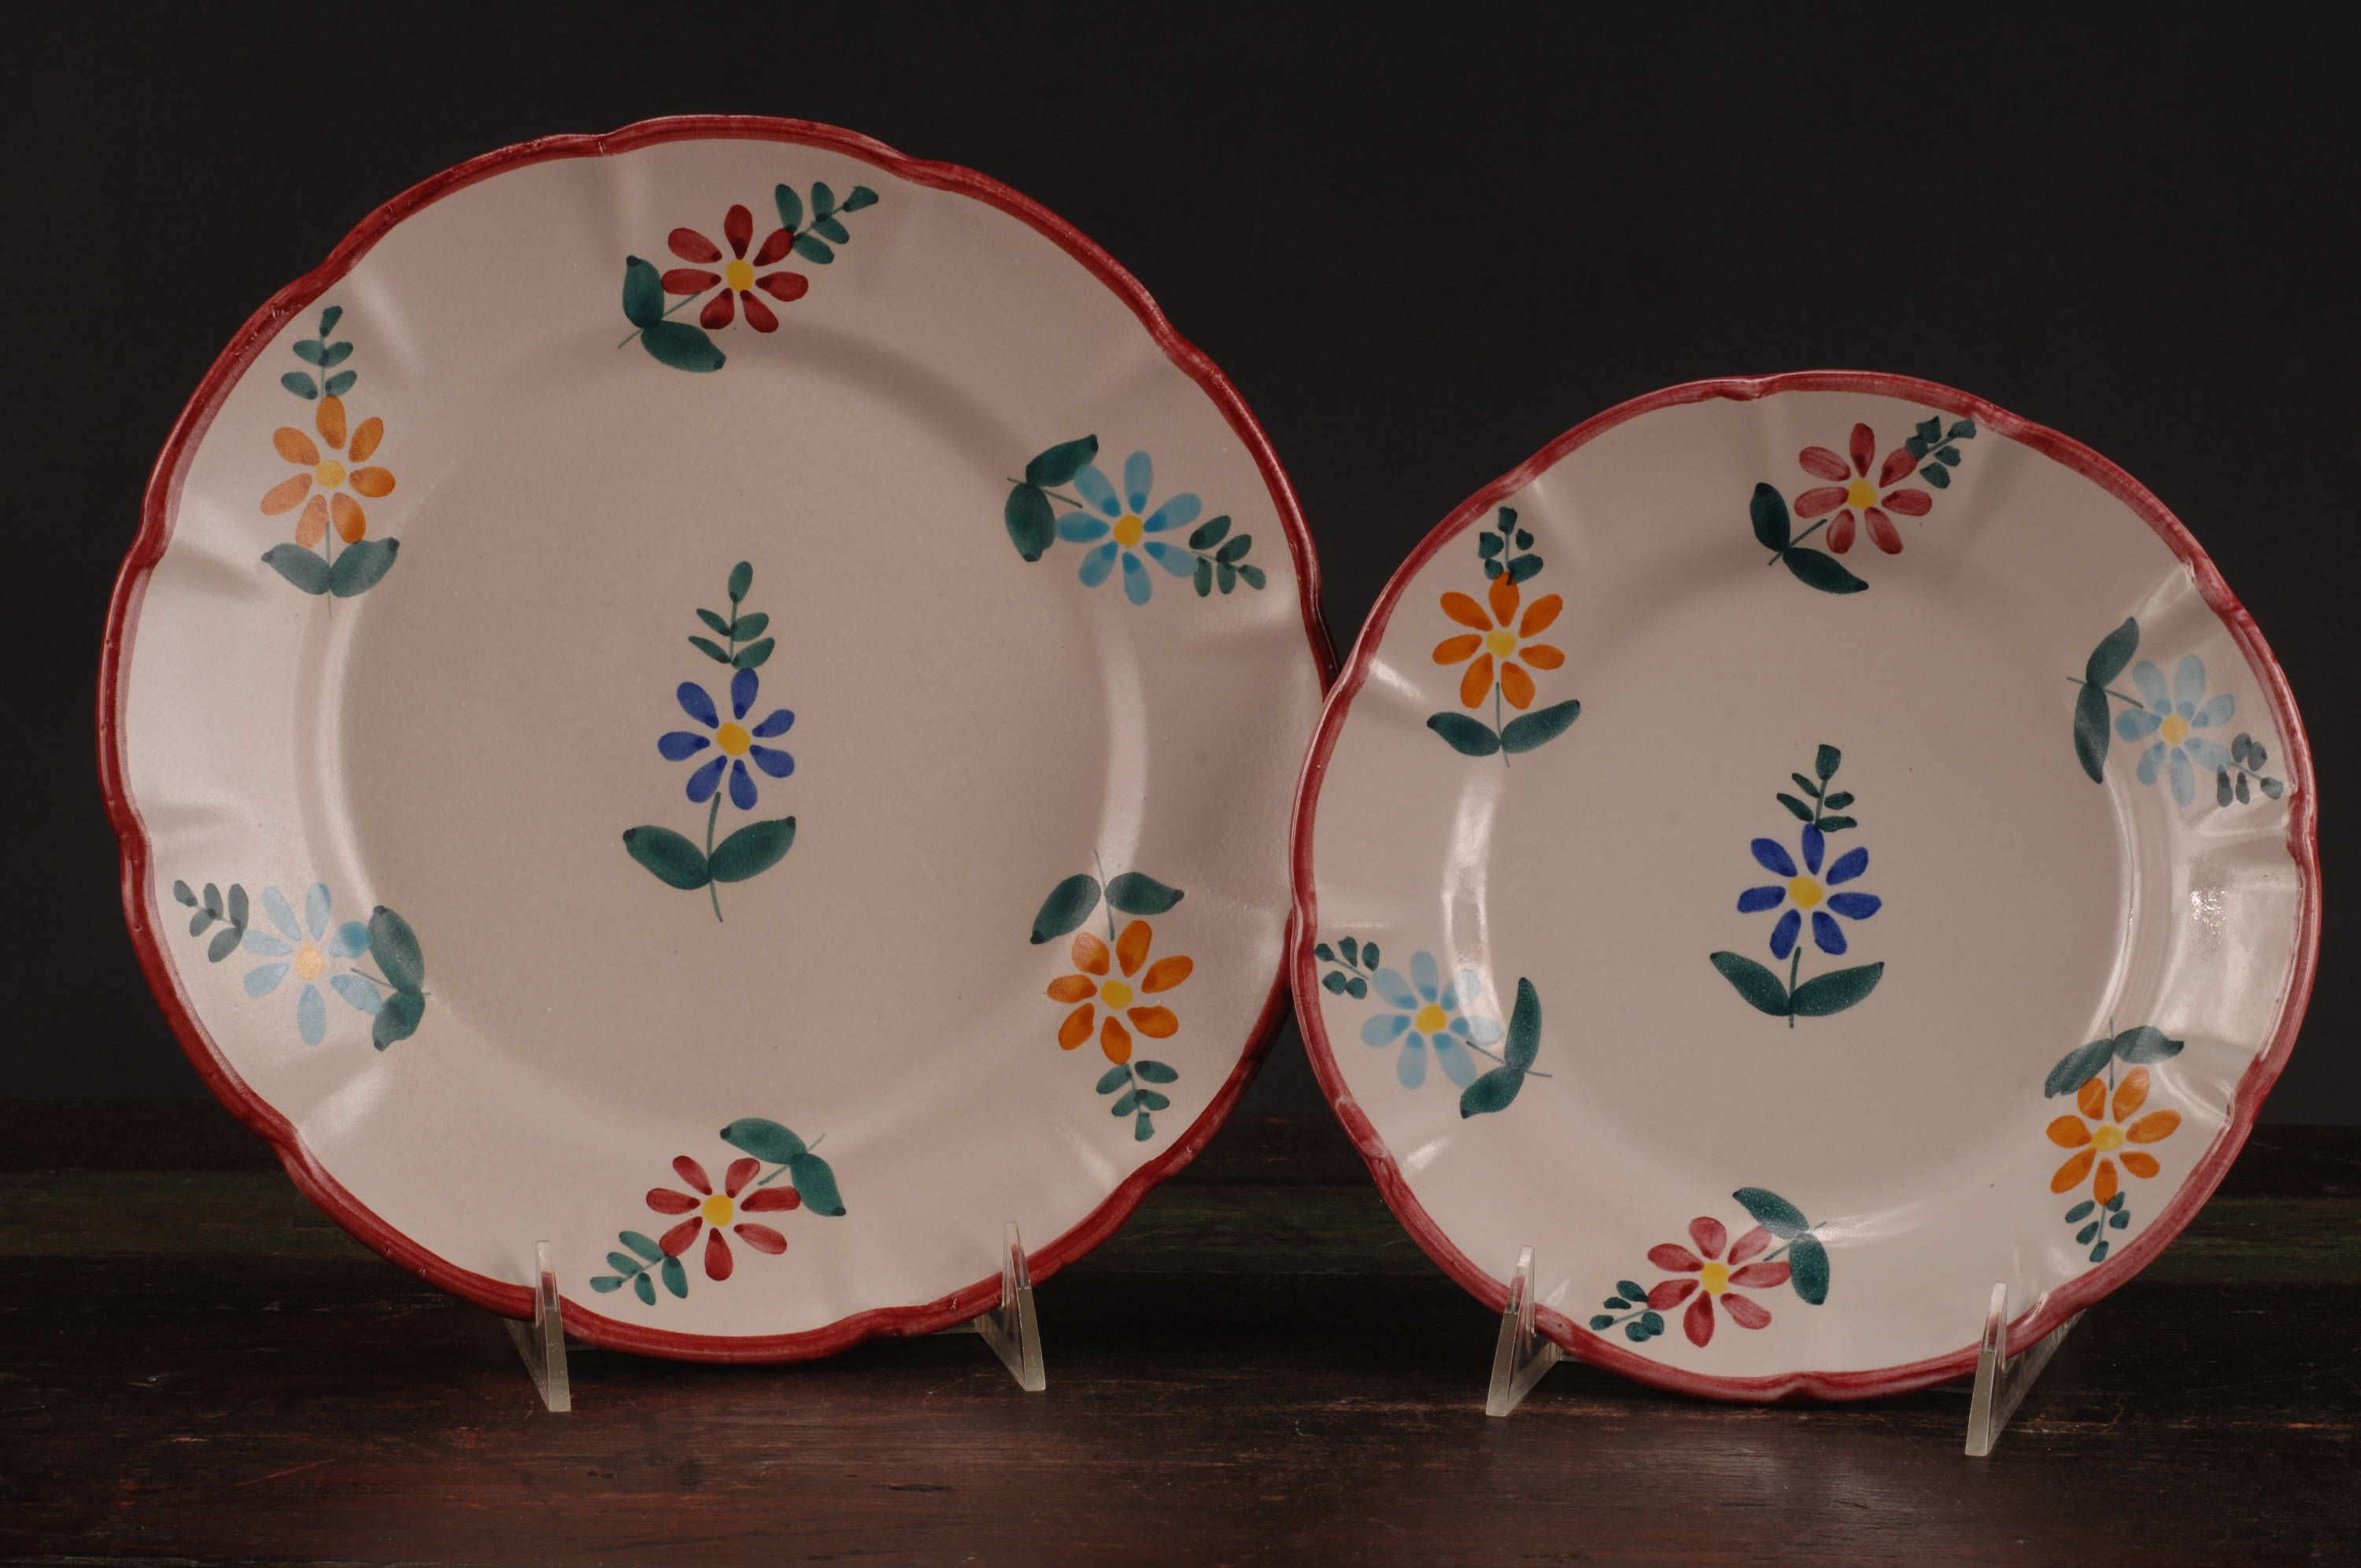 Gumps Italian Dinner Plate and Salad/Dessert Plate Red Border by dinaandpartners on Etsy & Gumps Italian Dinner Plate and Salad/Dessert Plate Red Border by ...